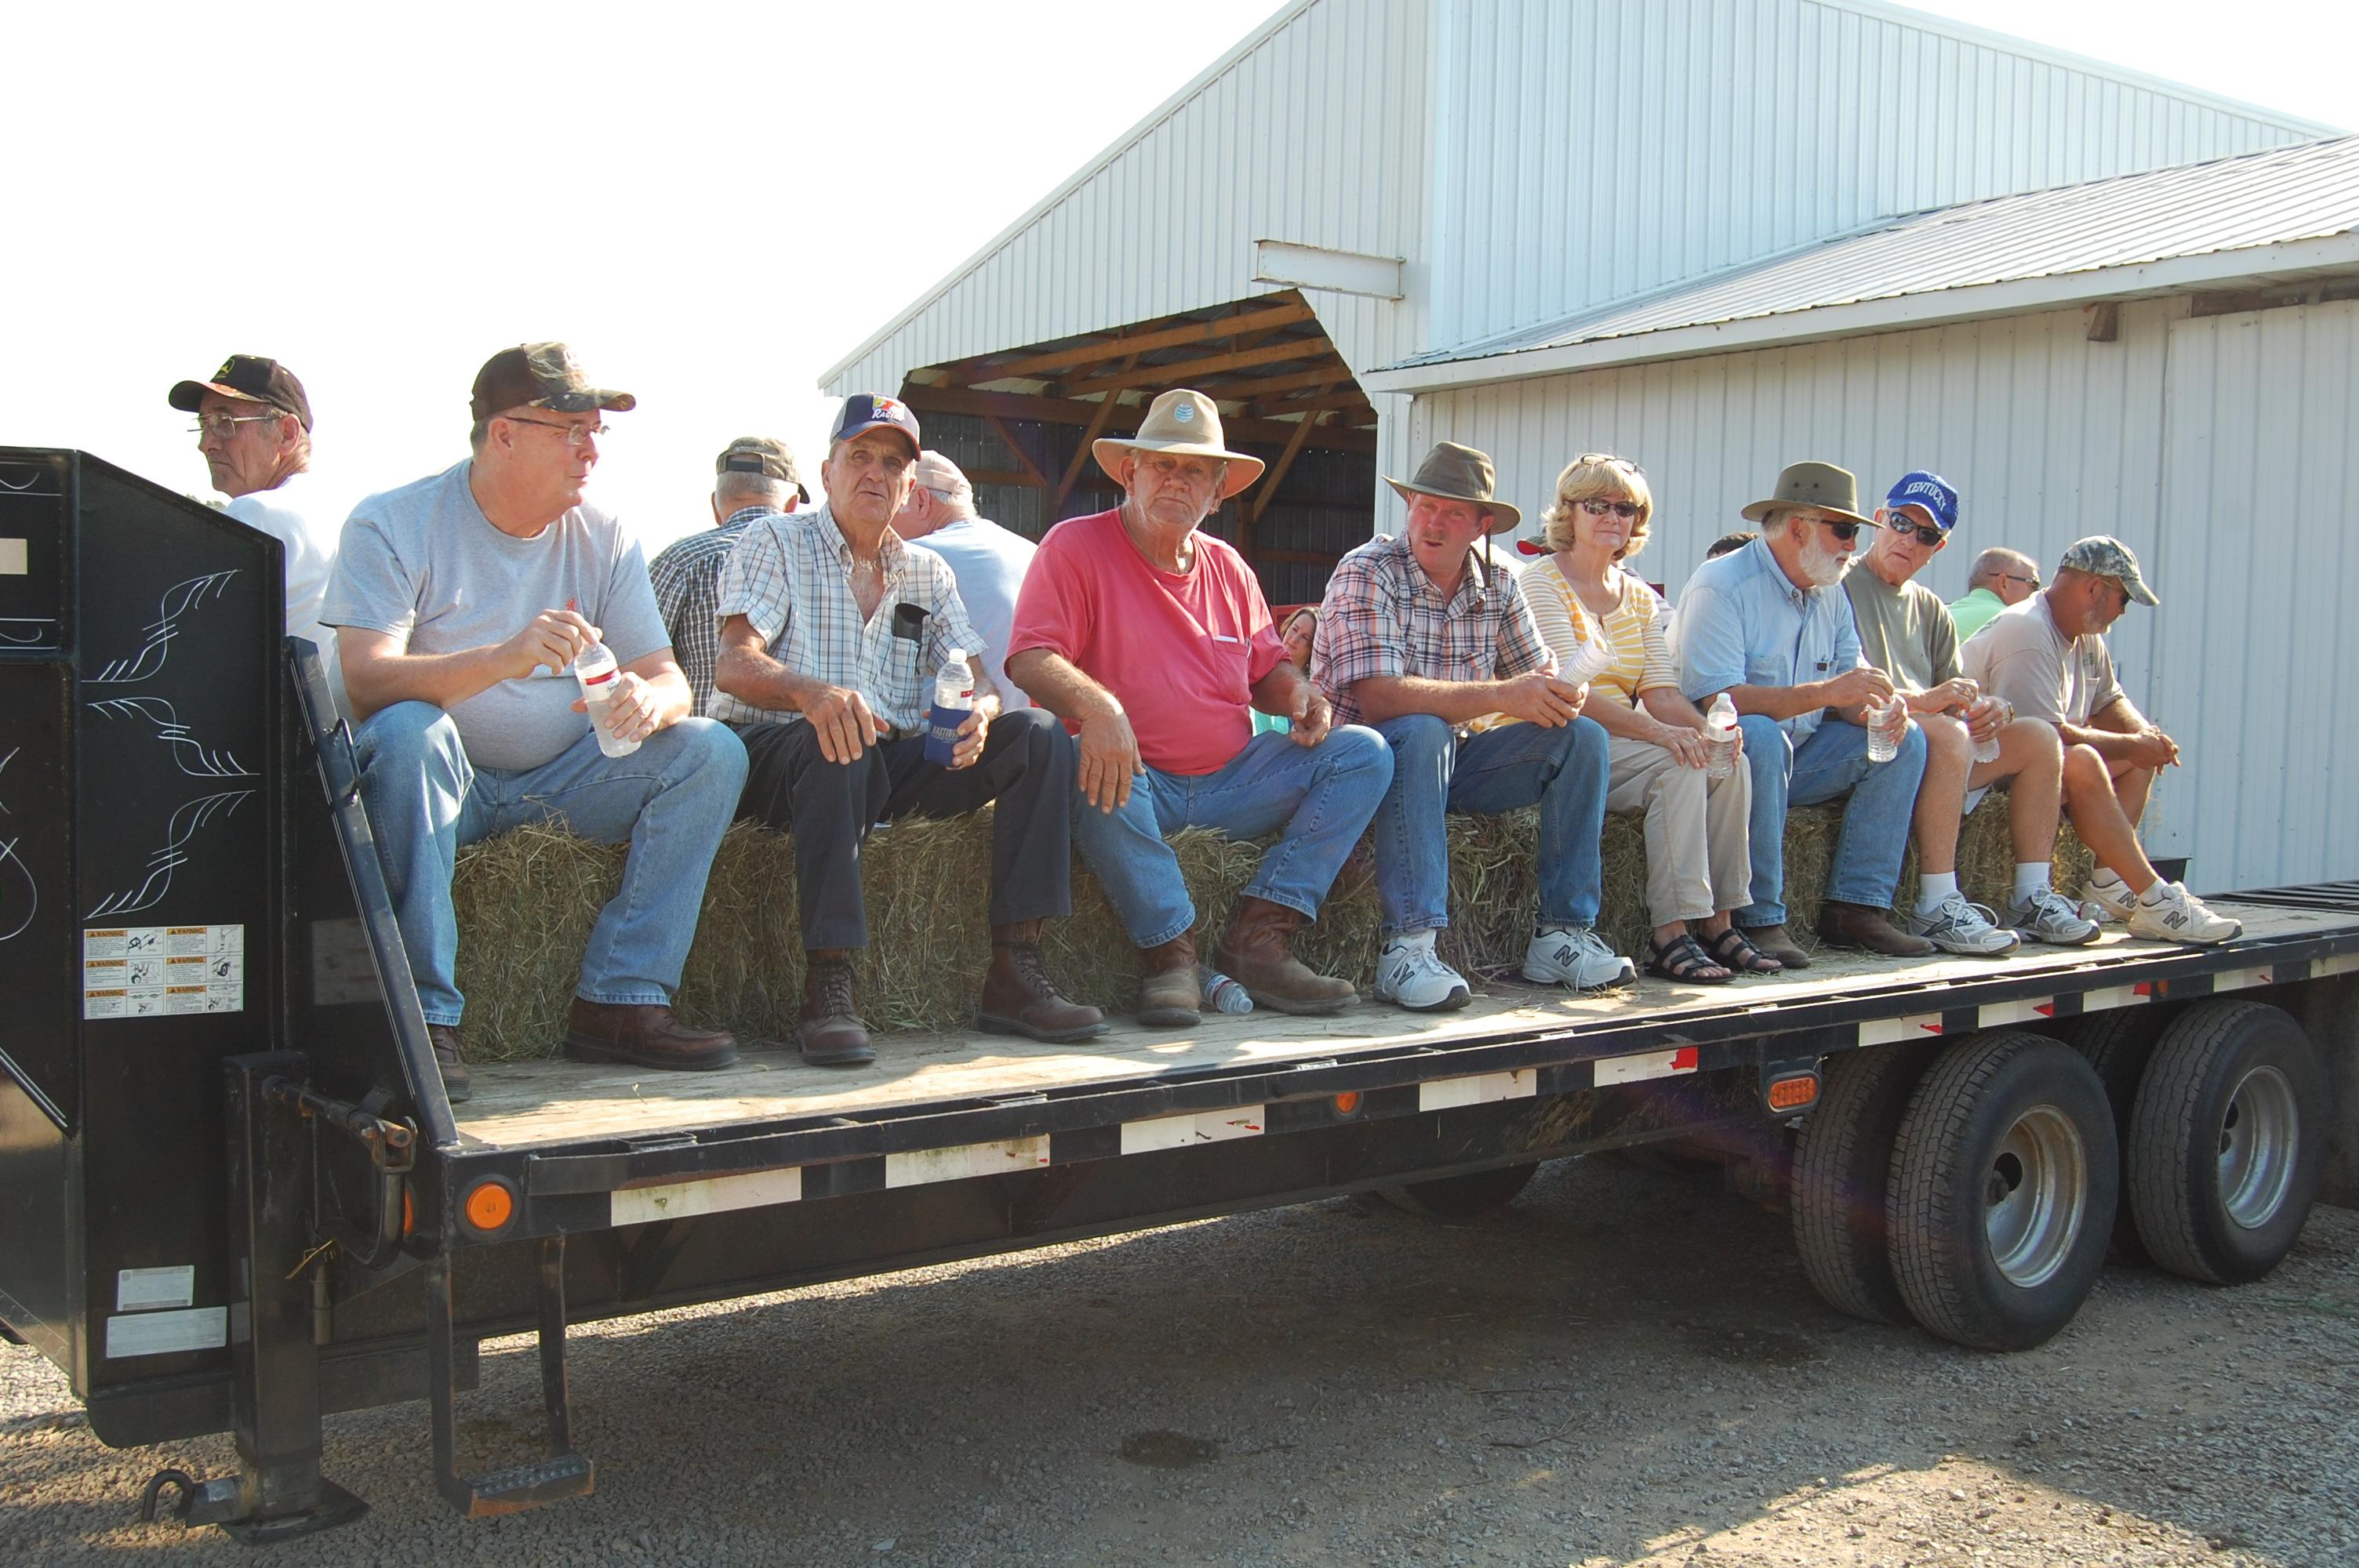 Attendees load wagon for hay ride.